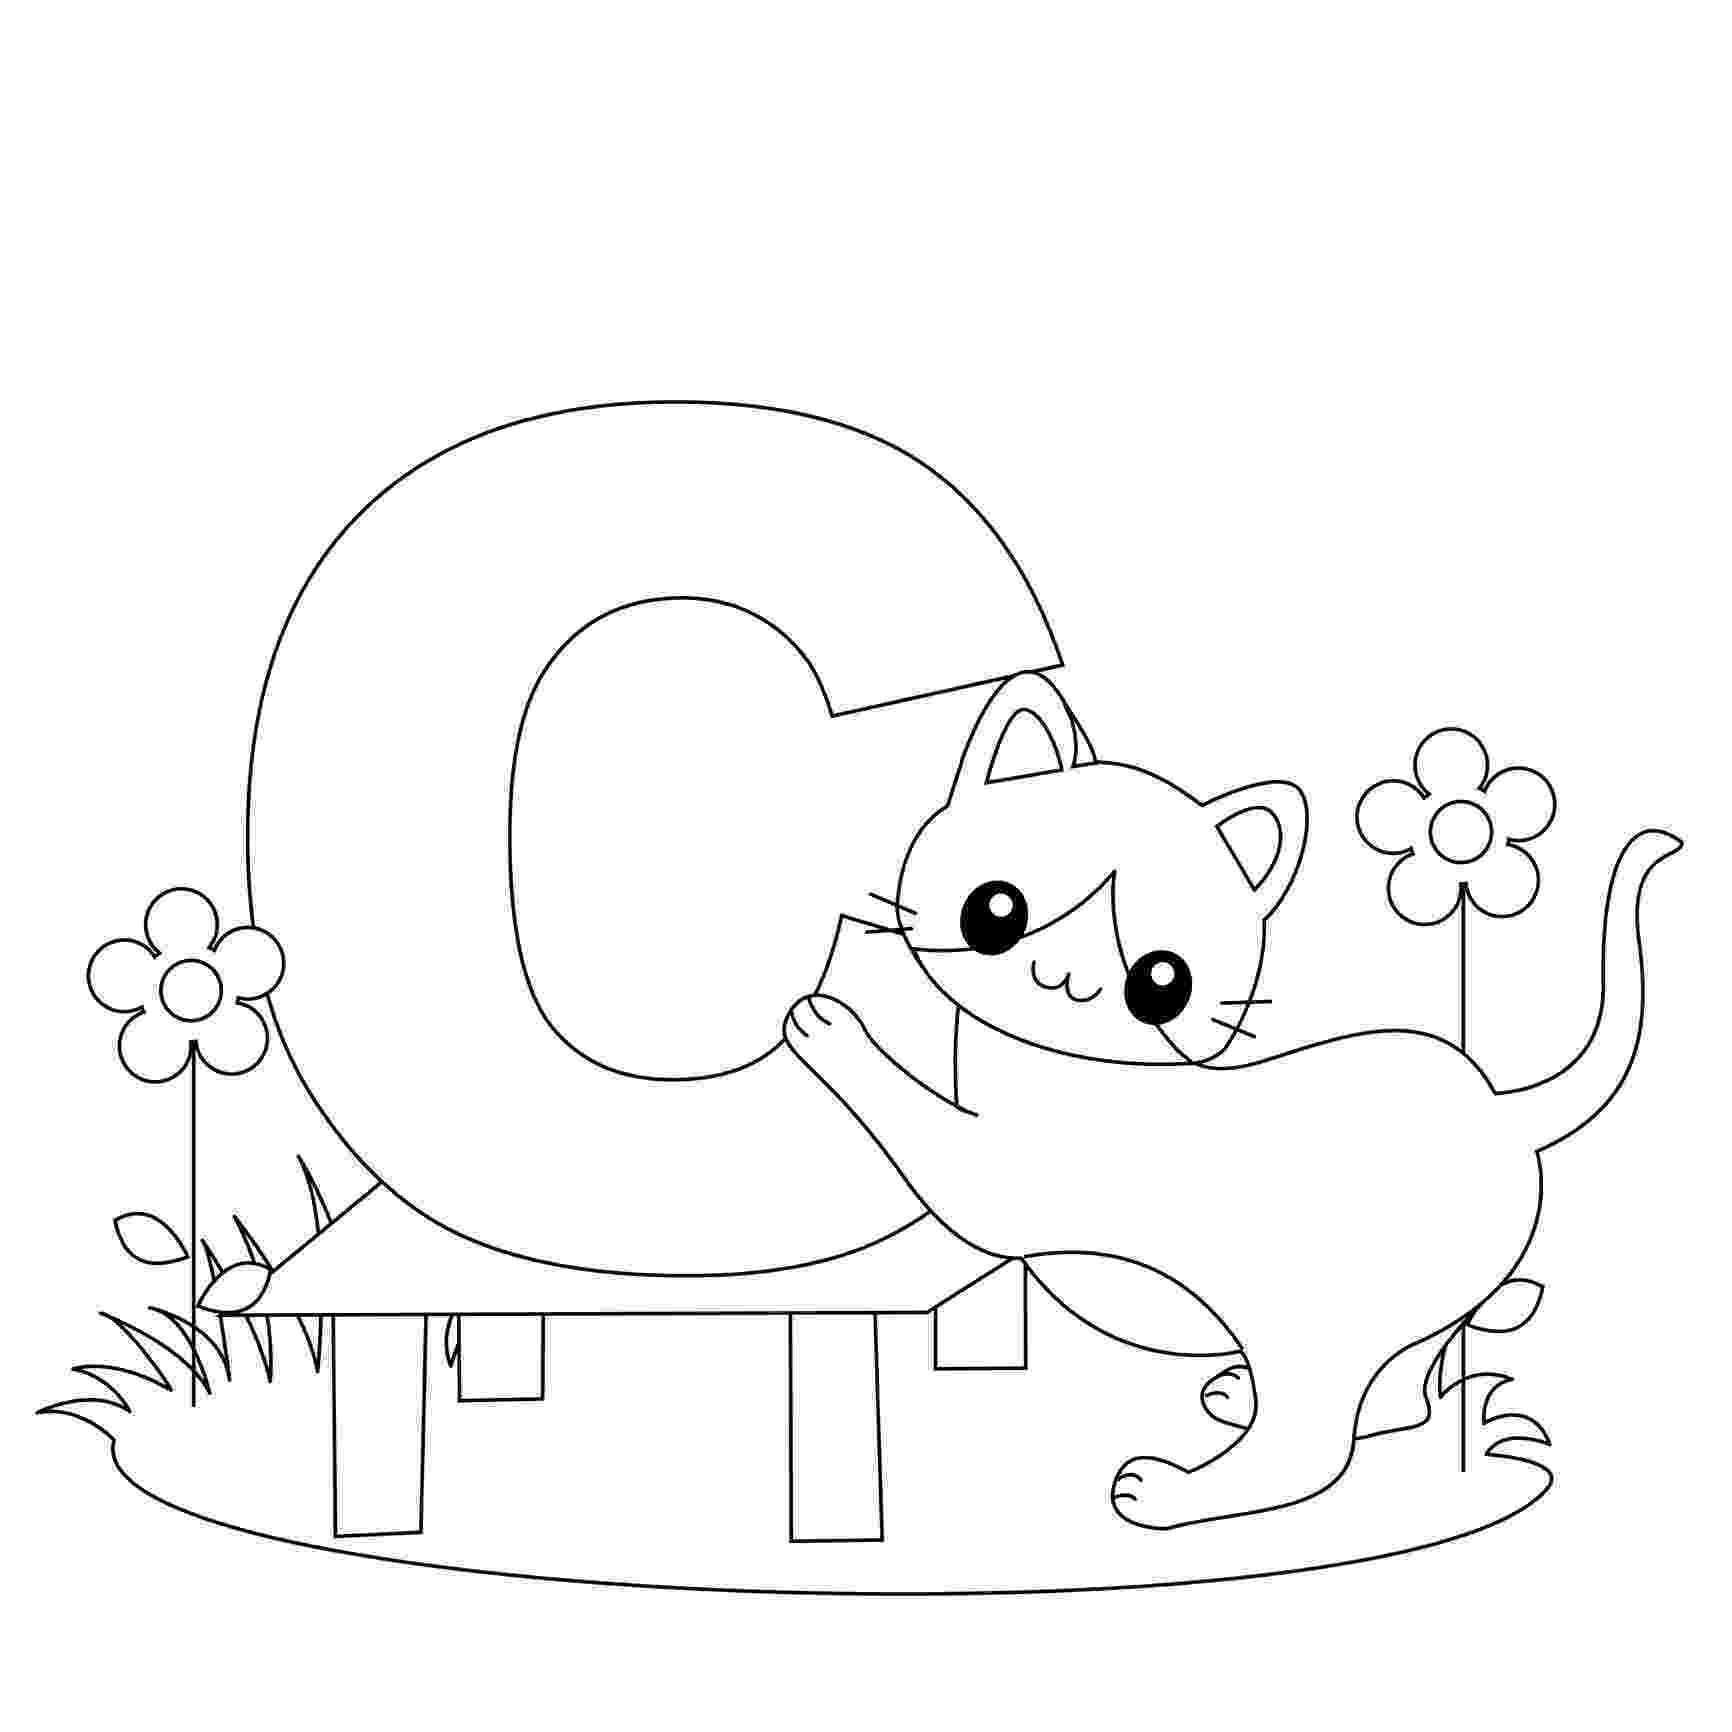 coloring pages of letters free printable alphabet coloring pages for kids best coloring letters of pages